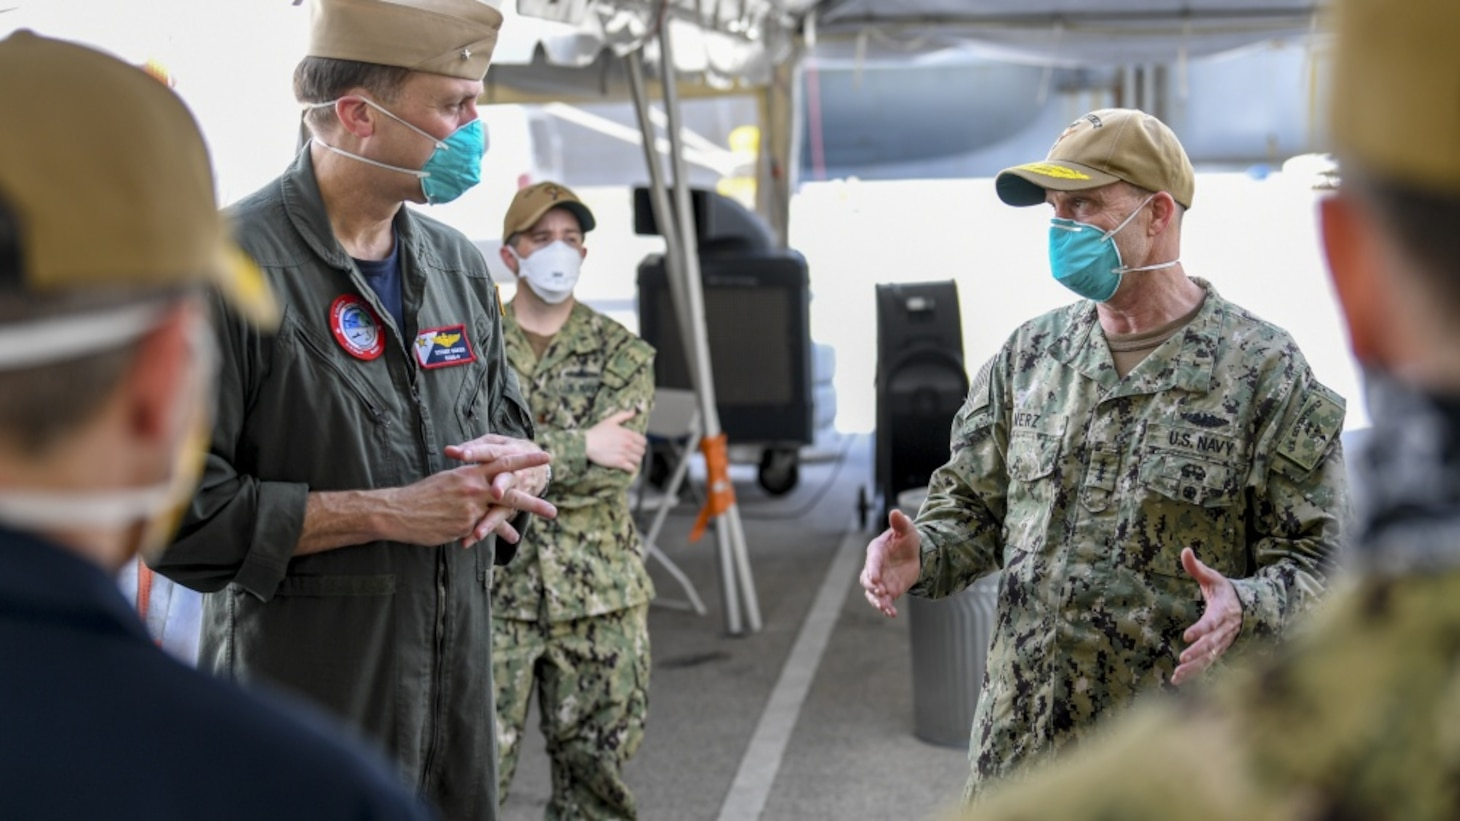 Vice Admiral Bill Merz, commander, U.S. 7th Fleet, meets with the staff and crew of the aircraft carrier USS Theodore Roosevelt (CVN 71), April 5. Merz arrived in Guam to assess and support the ongoing COVID-19 recovery efforts for the crew of Theodore Roosevelt.